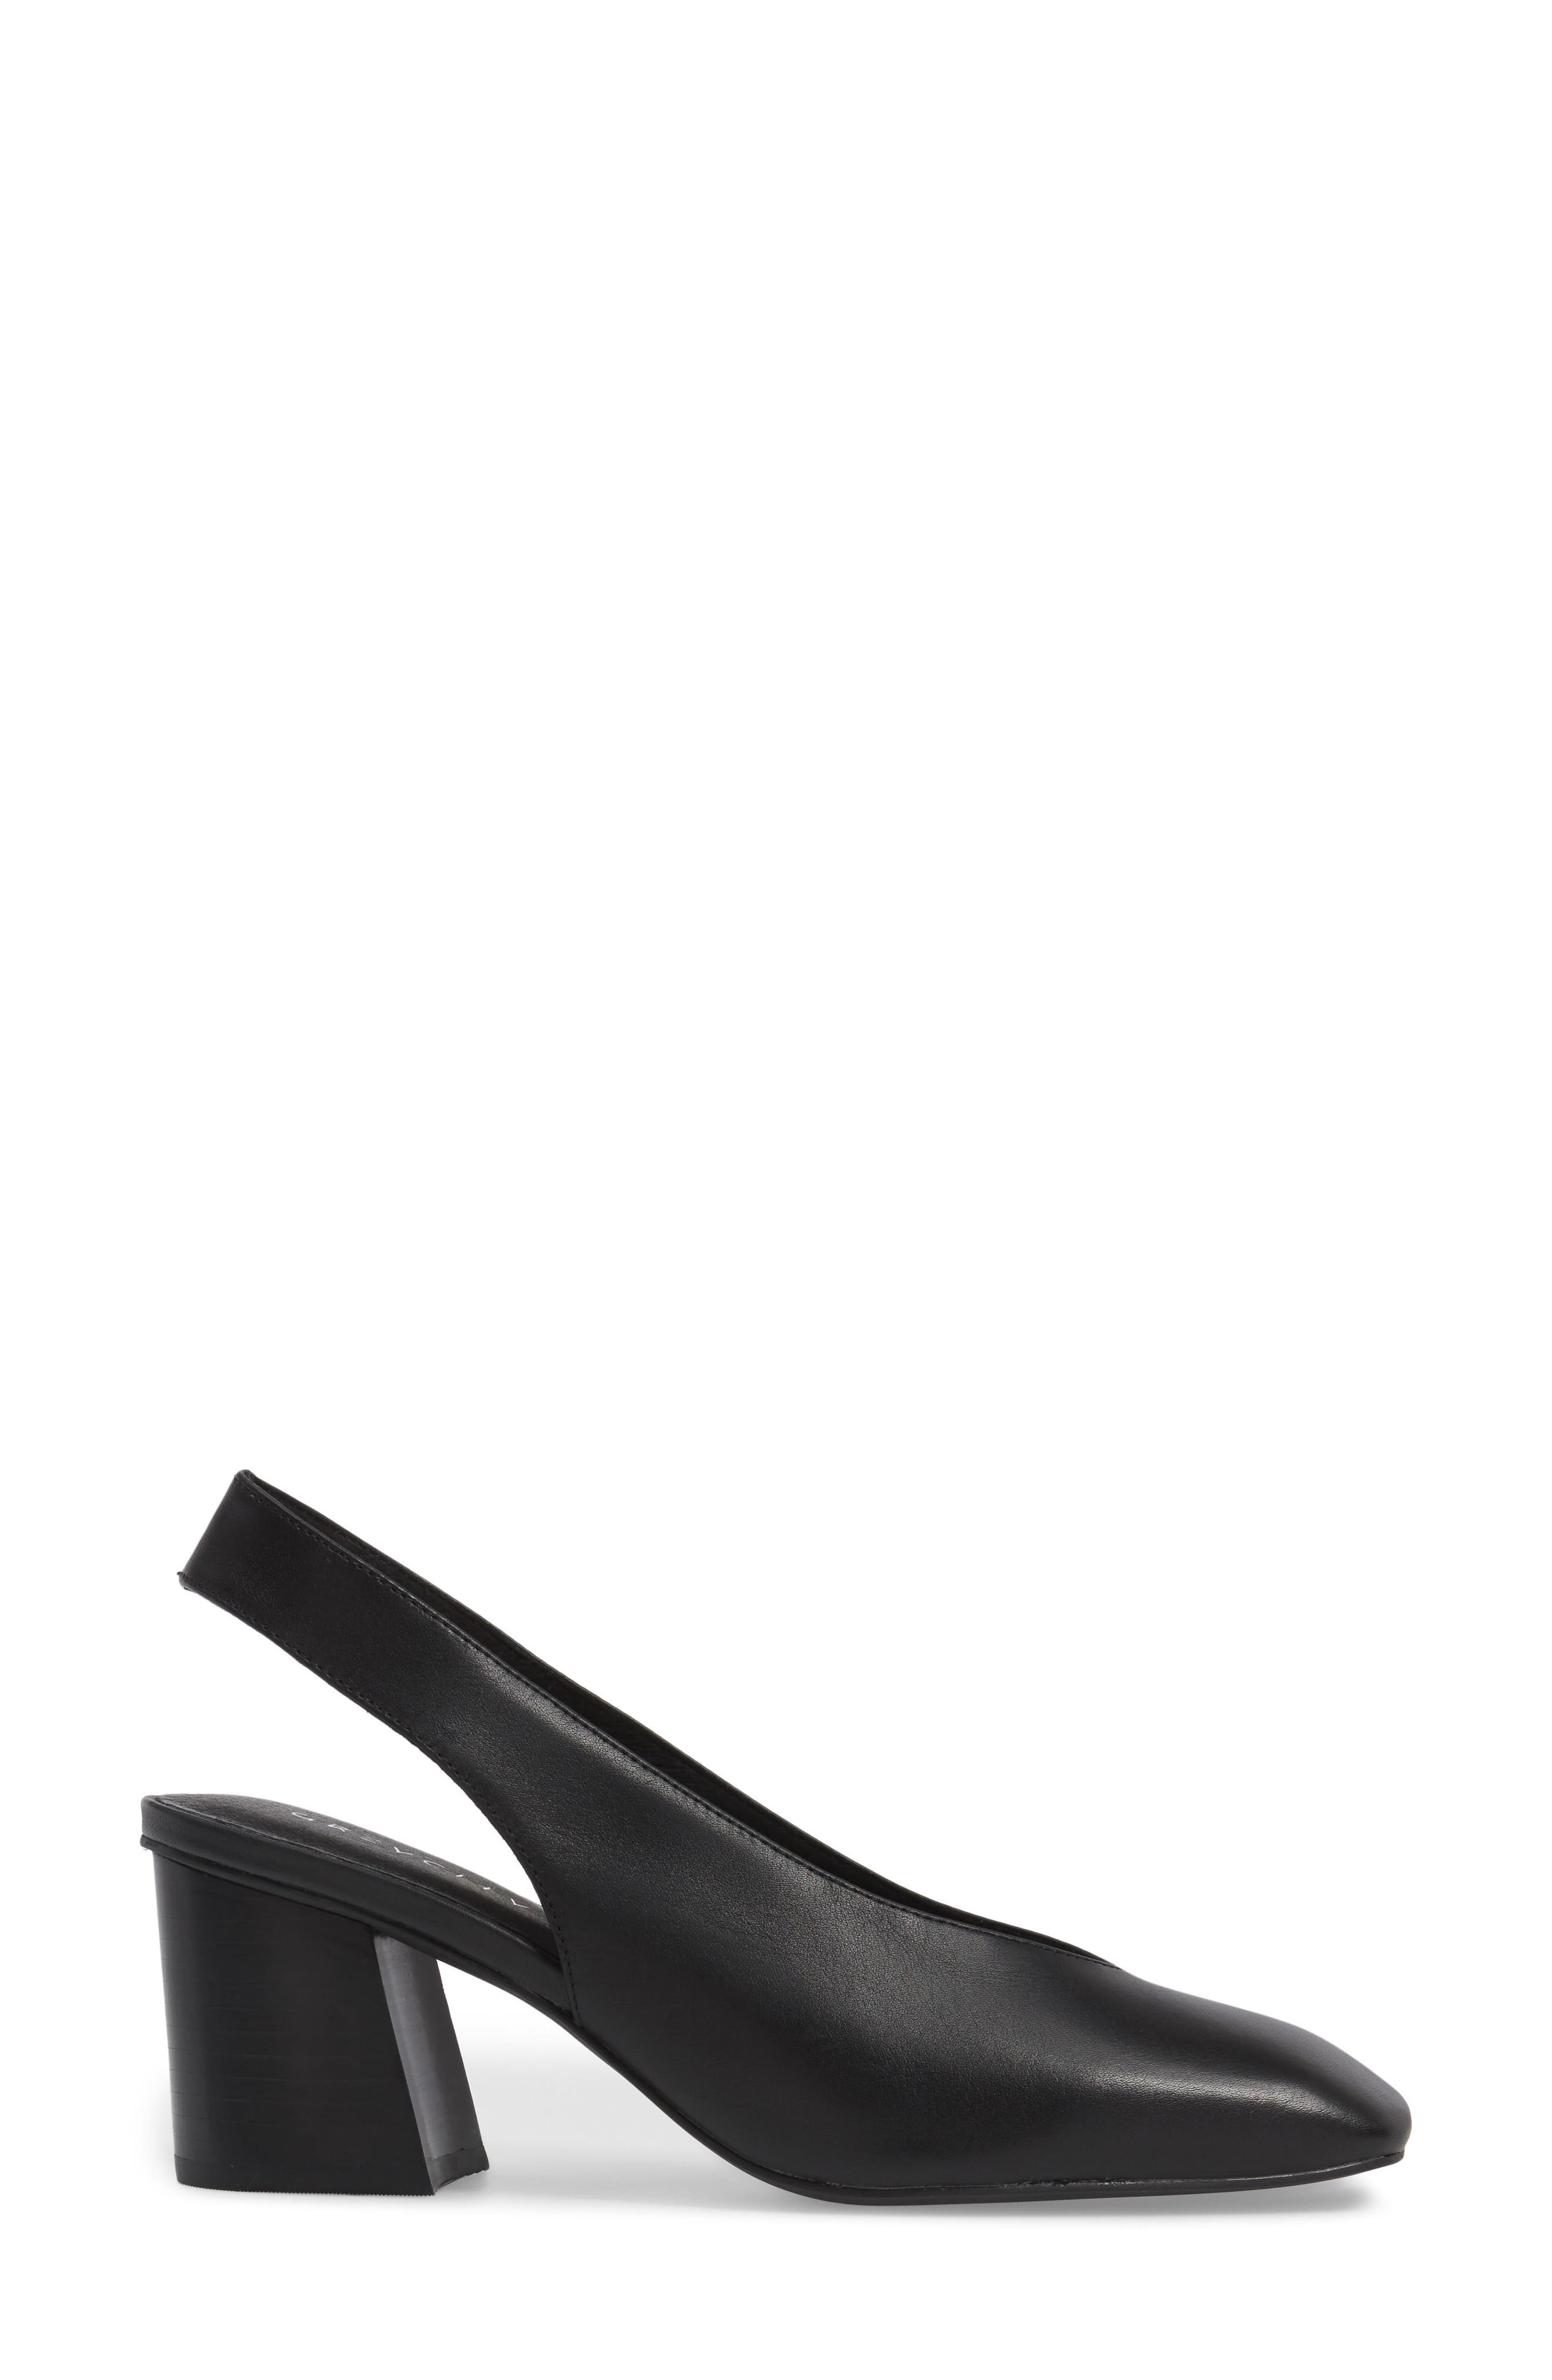 Sydney Square-Toe Slingback Pump,                             Alternate thumbnail 3, color,                             Black